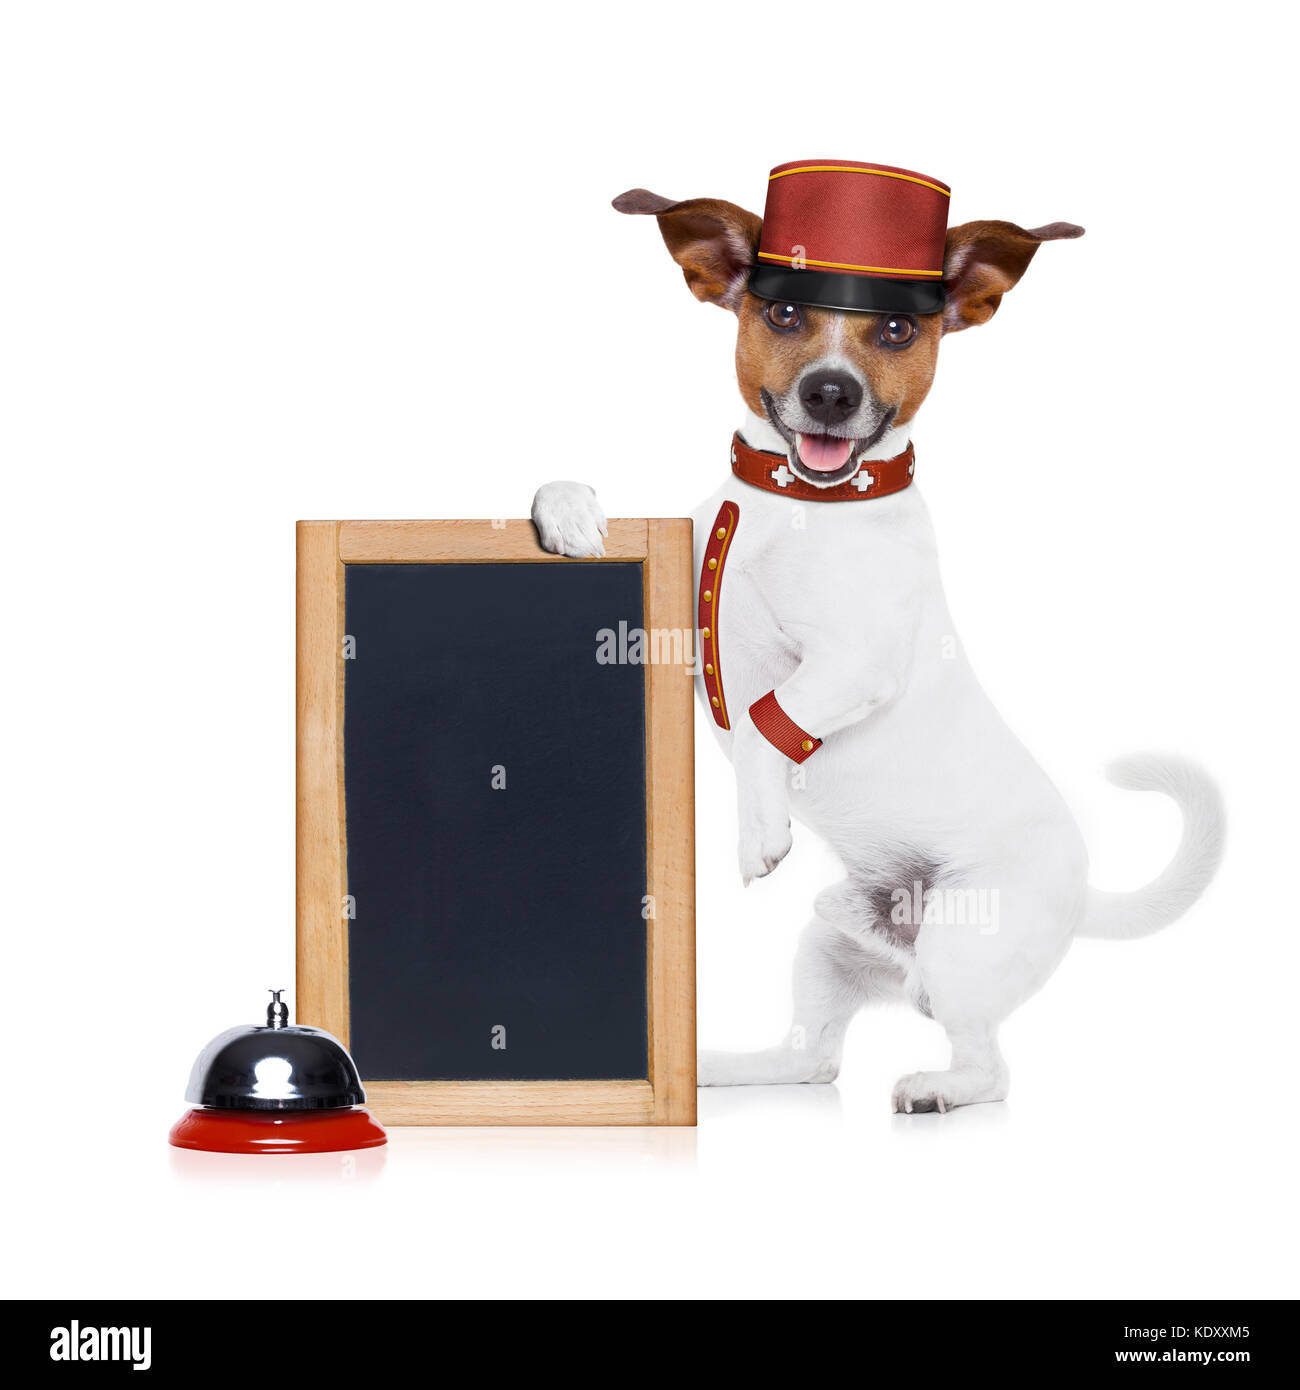 jack russell bellboy dog holding a blank and empty blackboard at hotel, where pets are welcome and allowed,isolated - Stock Image